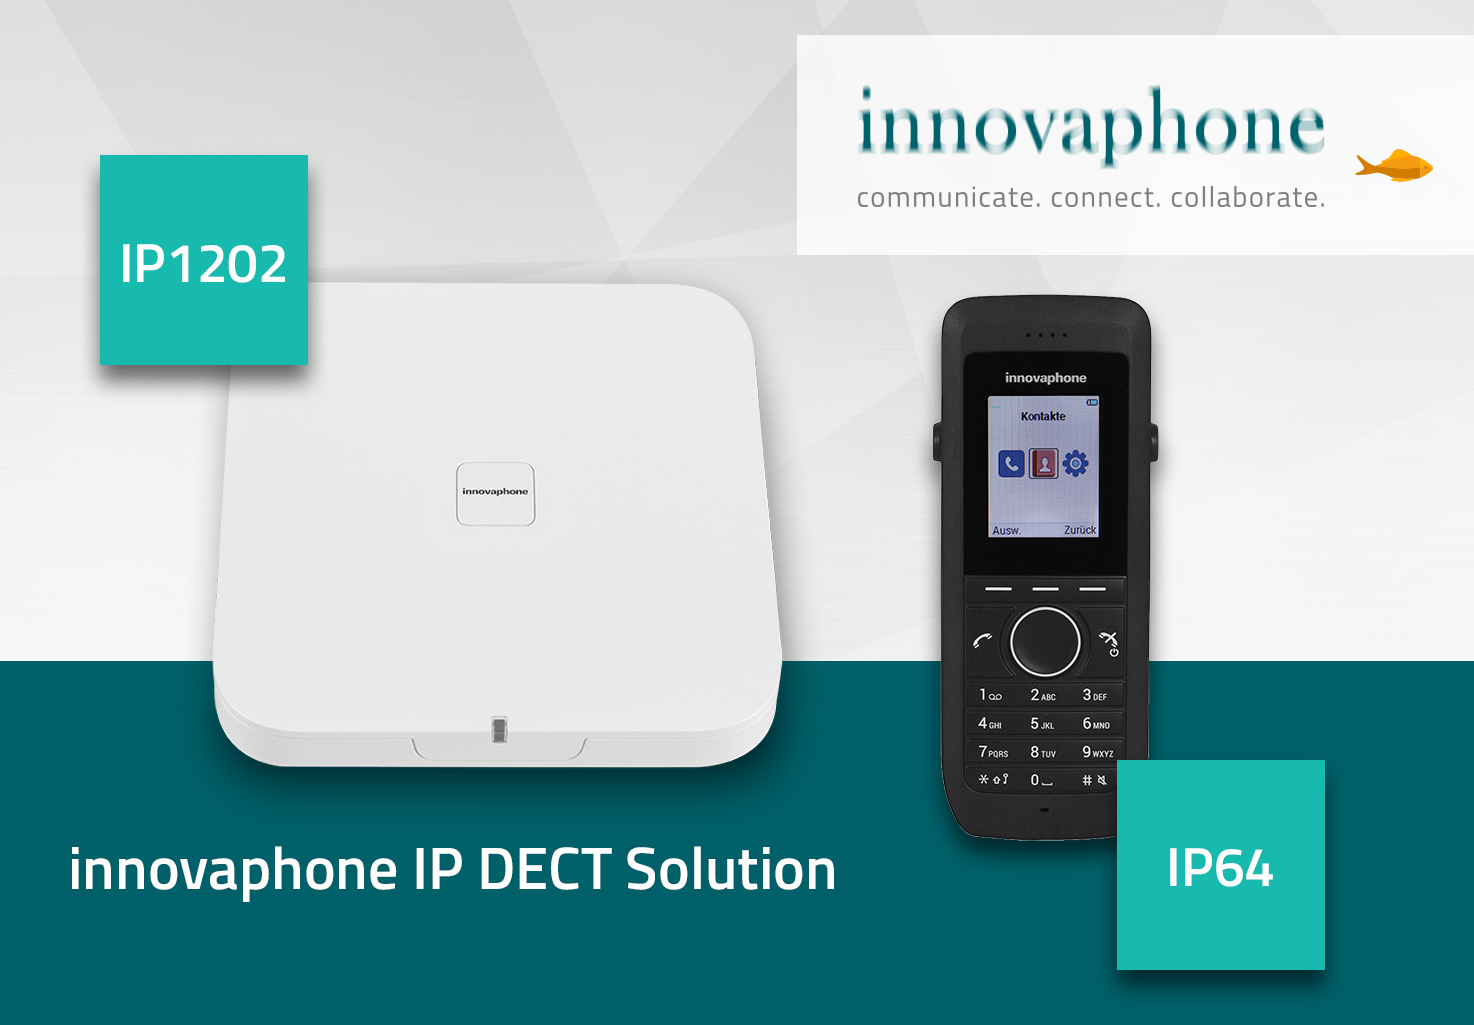 innovaphone Product of the month September 2020 IP64 IP1202 EN